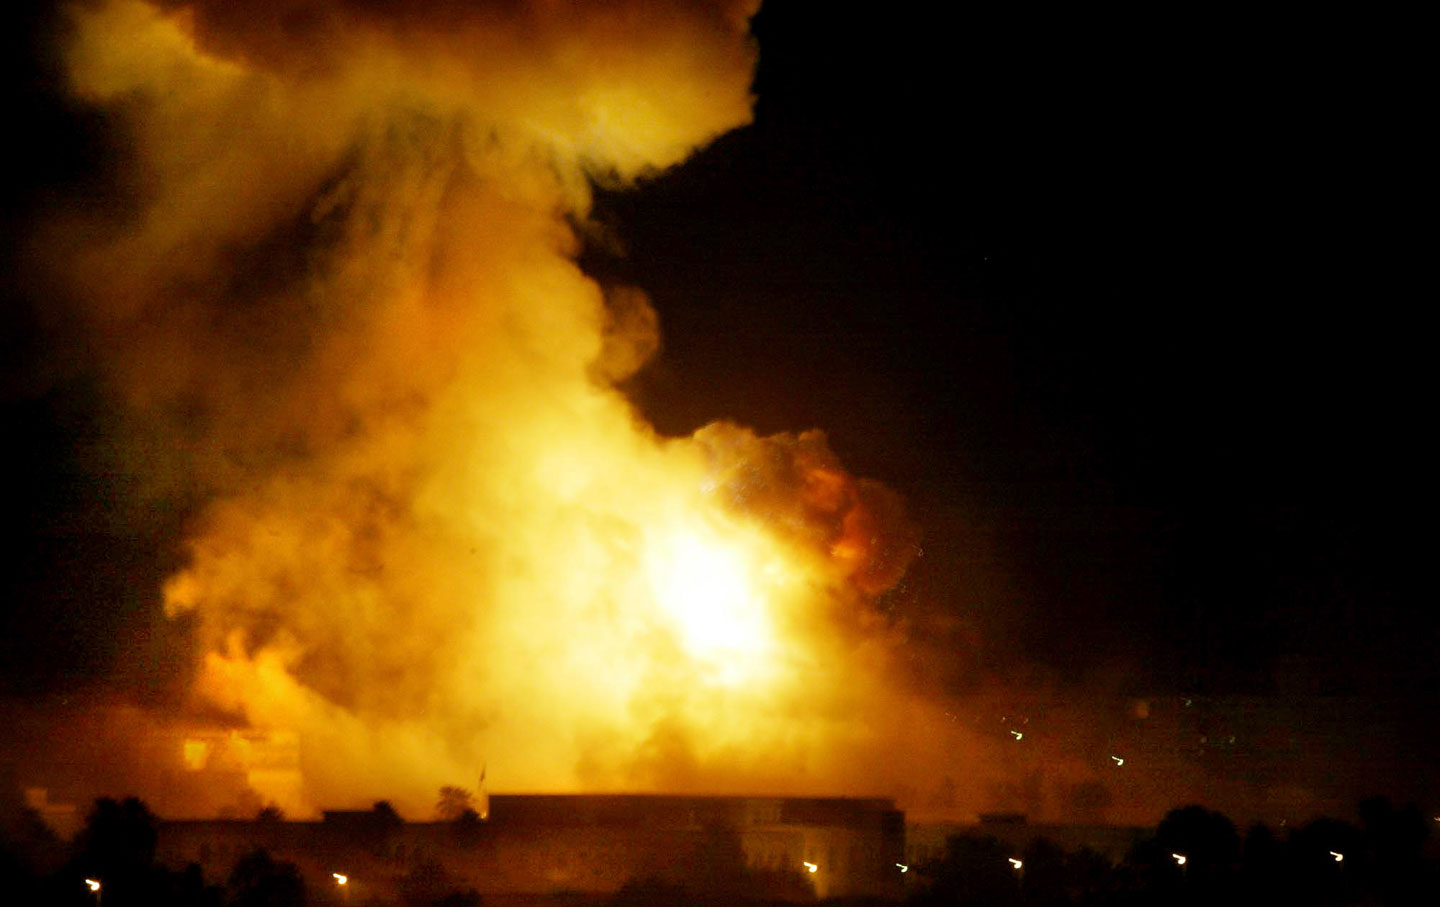 A government building burns during heavy bombardment of Baghdad, Iraq, by US-led forces, March 21, 2003. (AP Photo / Jerome Delay)